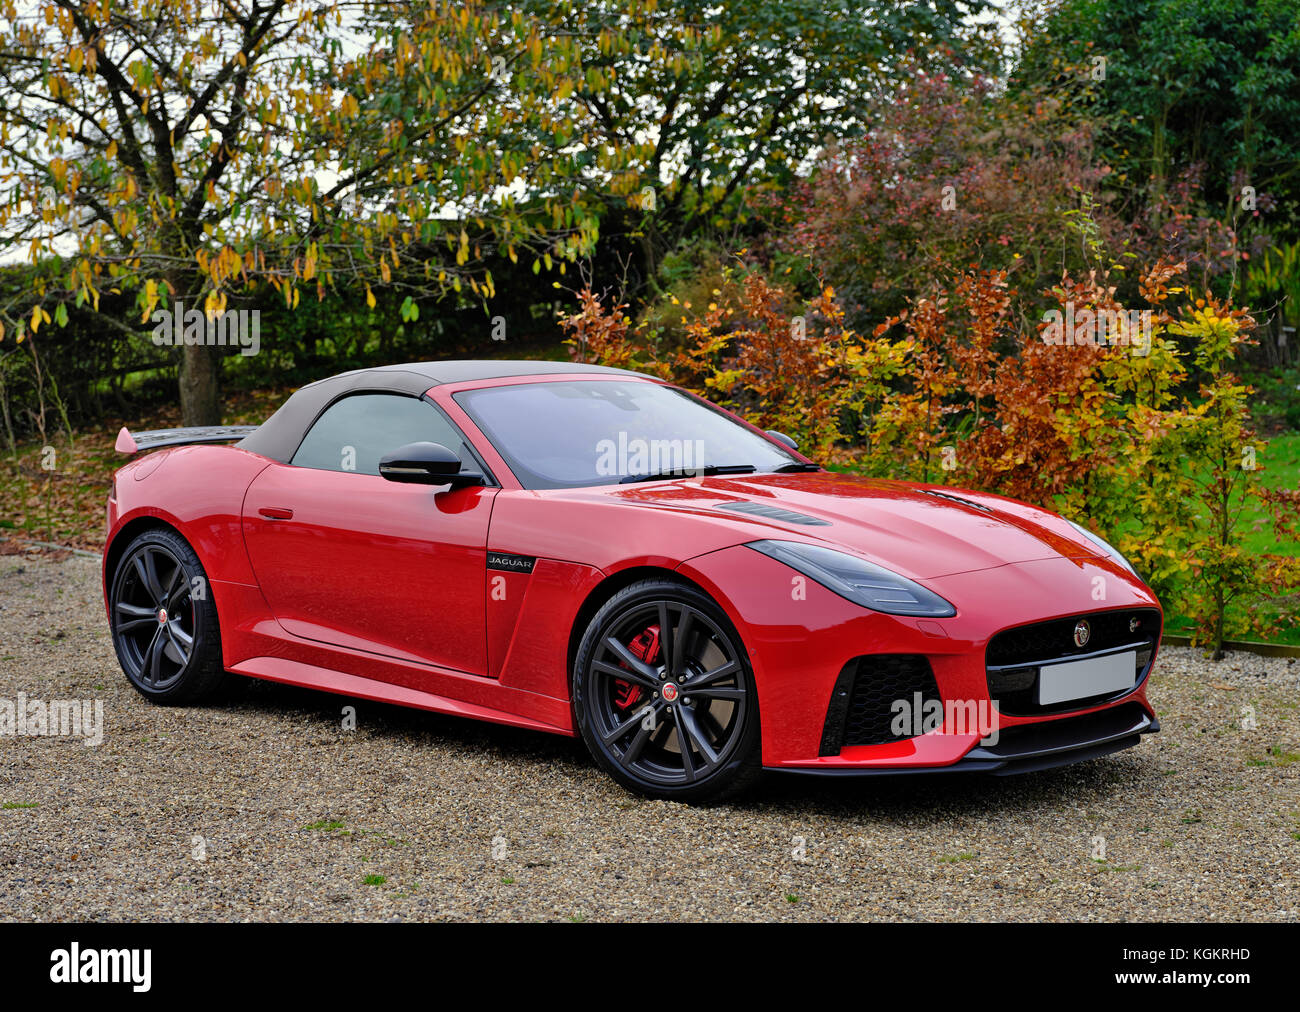 Jaguar F Type Red A Red Jaguar F Type Svr Sports Car In A Country Driveway